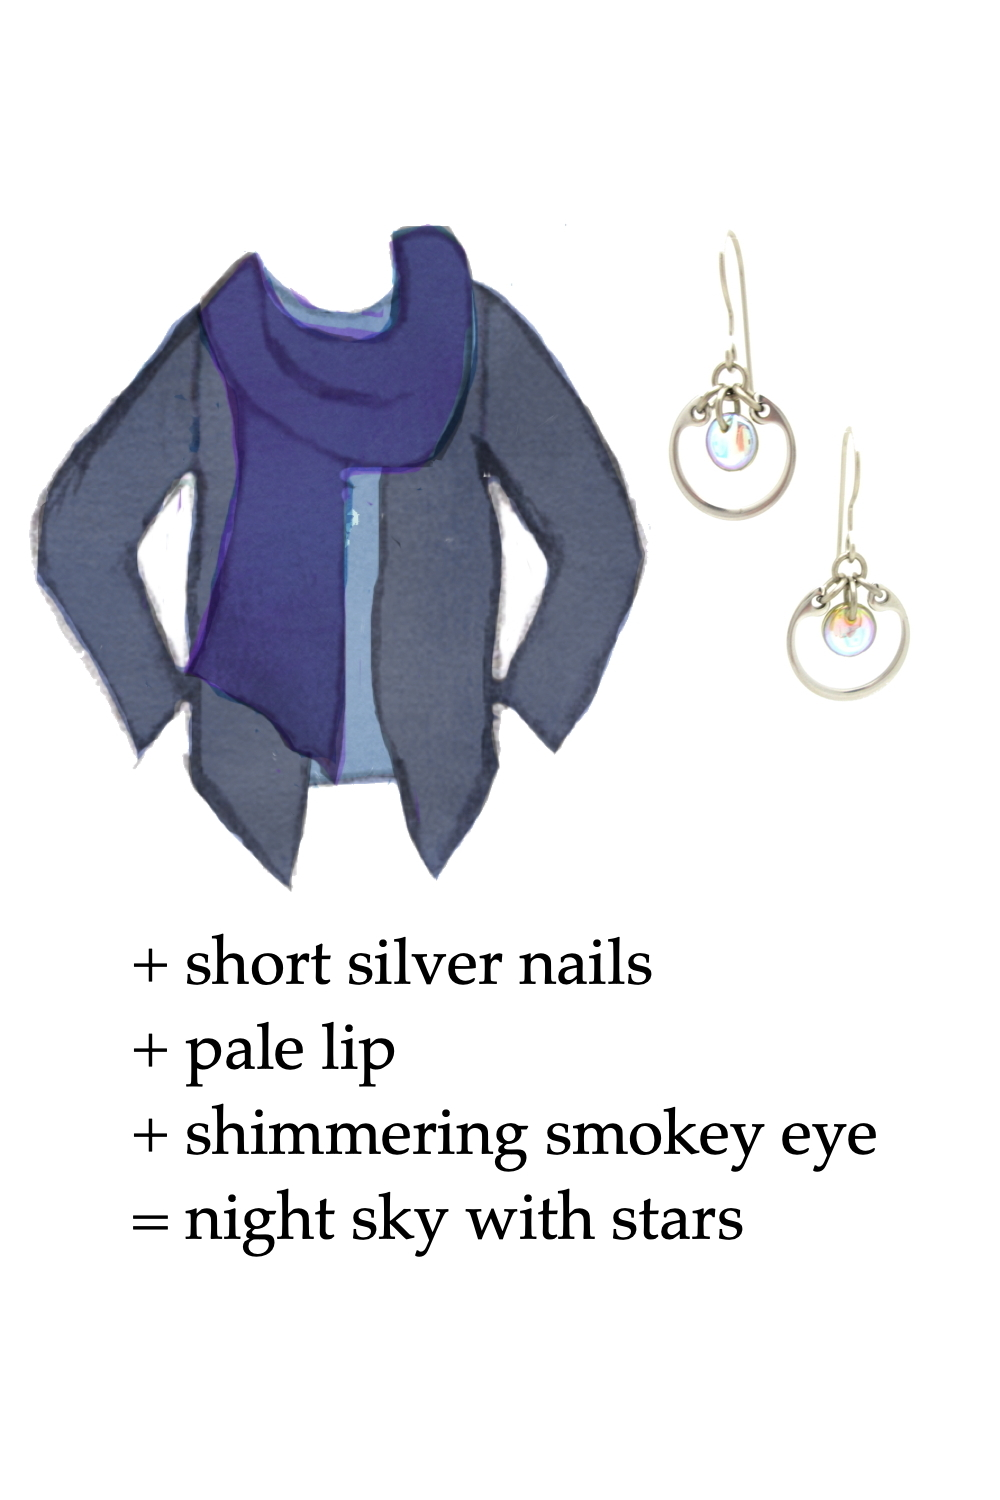 Style sketch of an outfit idea in shades of blue, with a pale blue tee, violet blue scarf, & dusty indigo cardigan, with Wraptillion's small modern circle earrings in pale rainbow. Text on image reads: + short silver nails + pale lip + shimmering smokey eye = night sky with stars